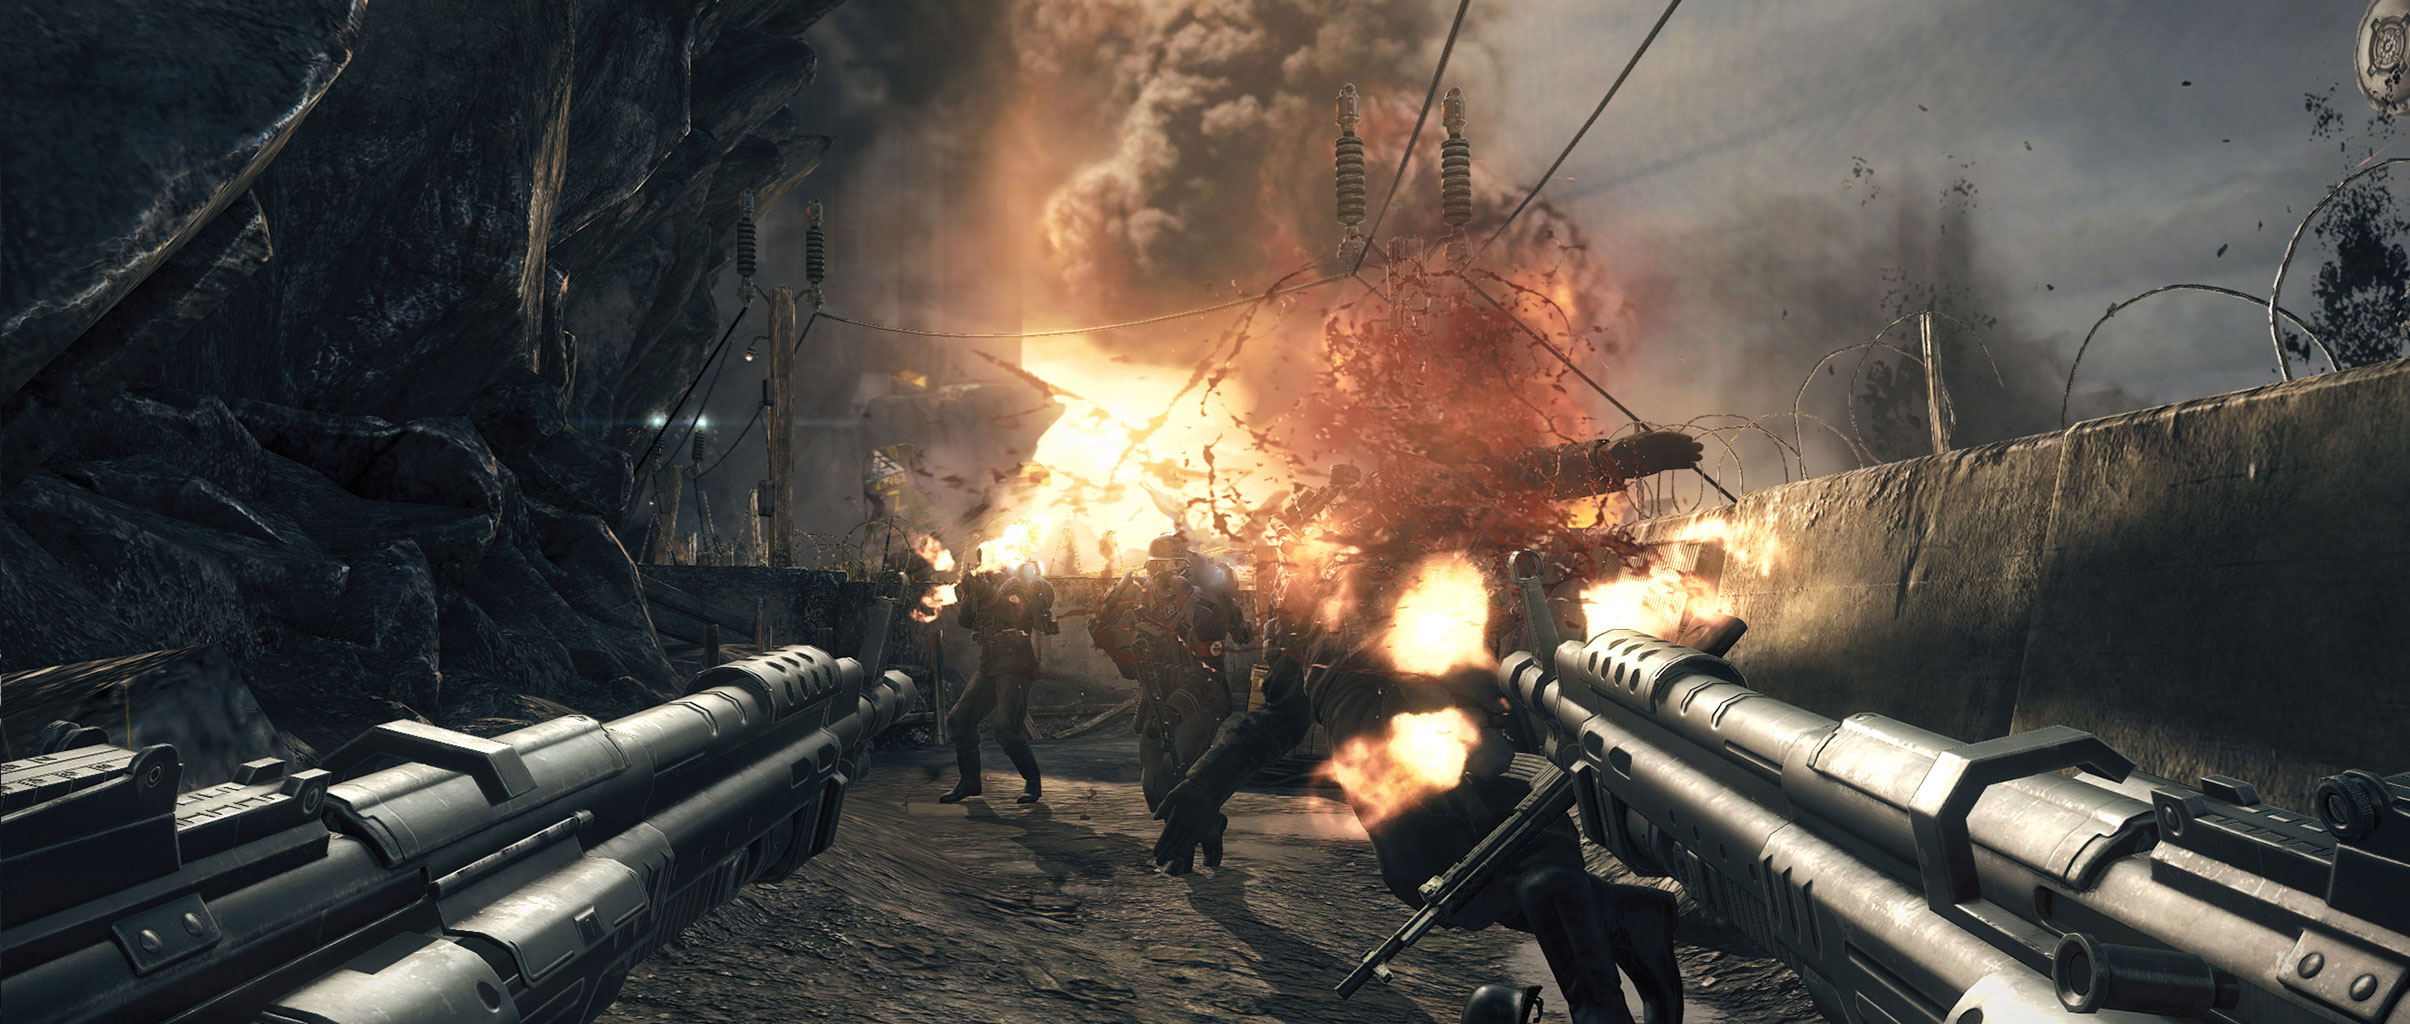 Wolfenstein-The-New-Order-5